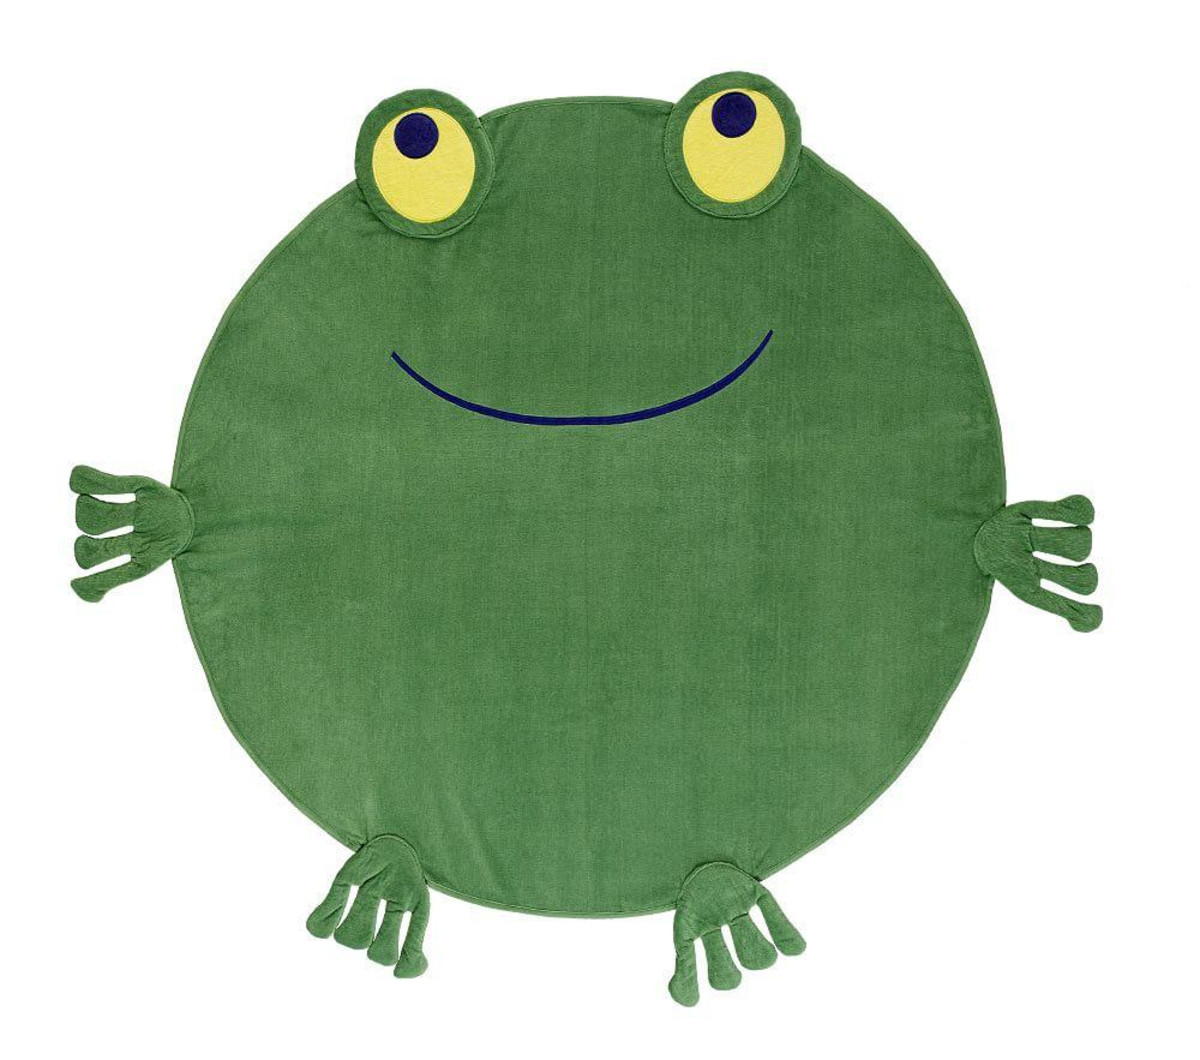 Pottery Barn Kids Frog Towel